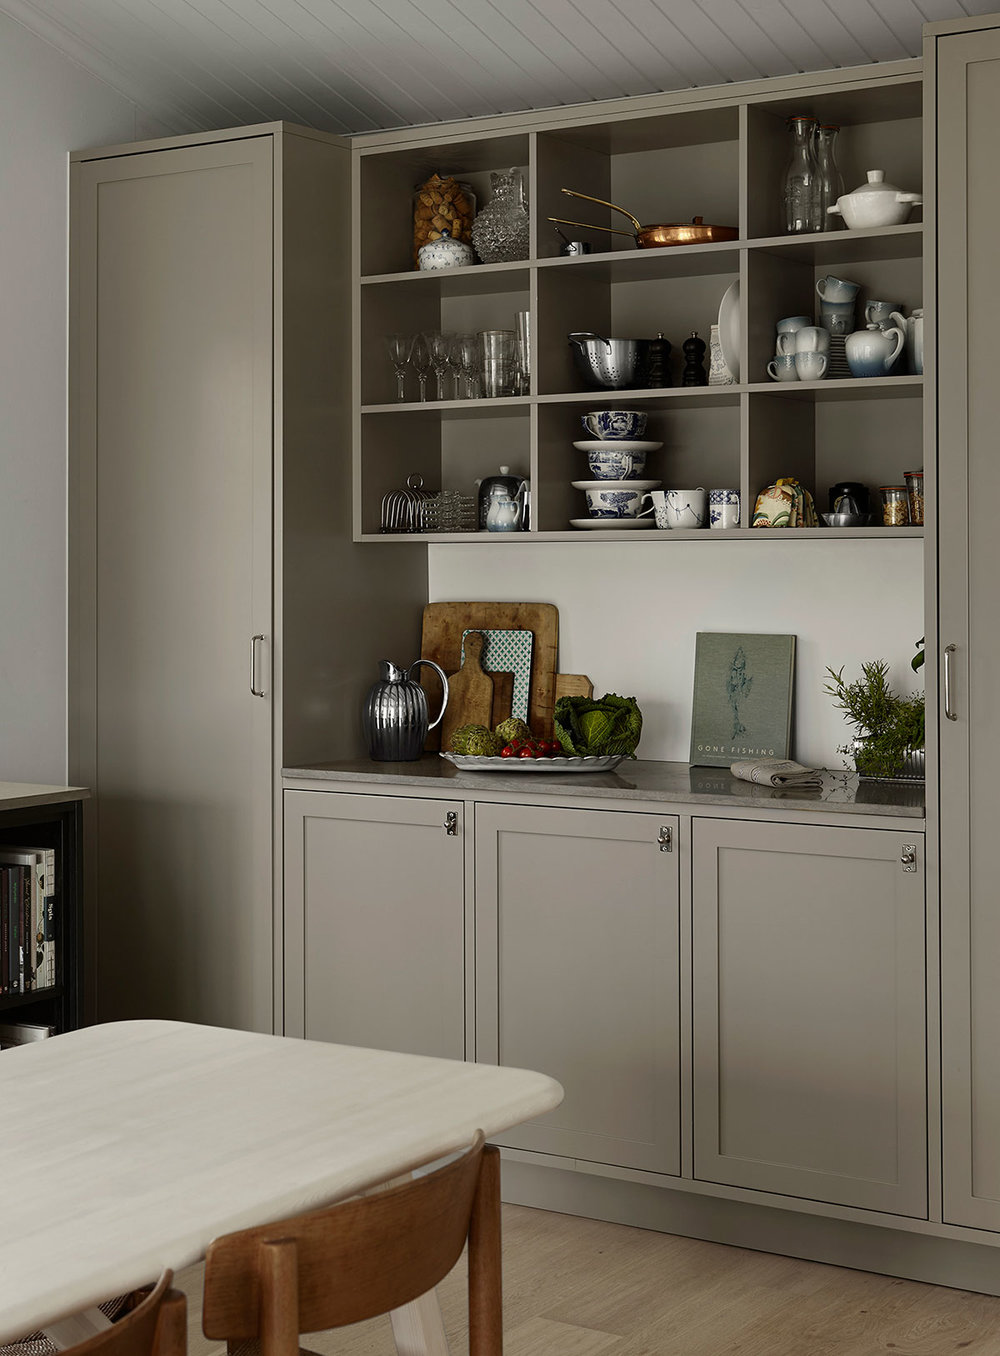 Johanna Bradfords kitchen, grey cabinets and limestone countertop